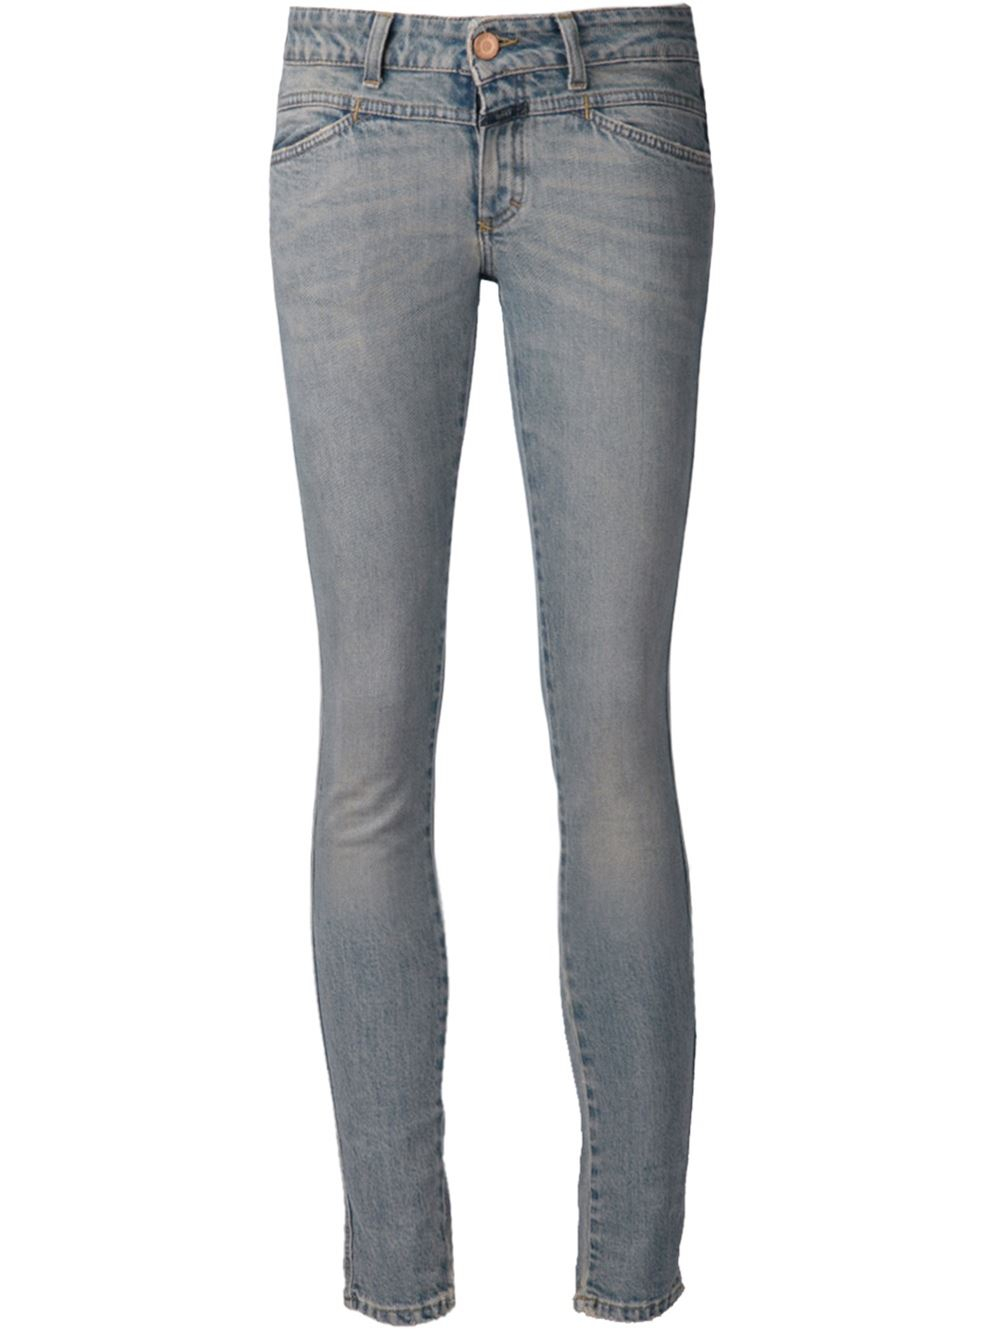 Closed 'Pedal Star' Jeans in Blue